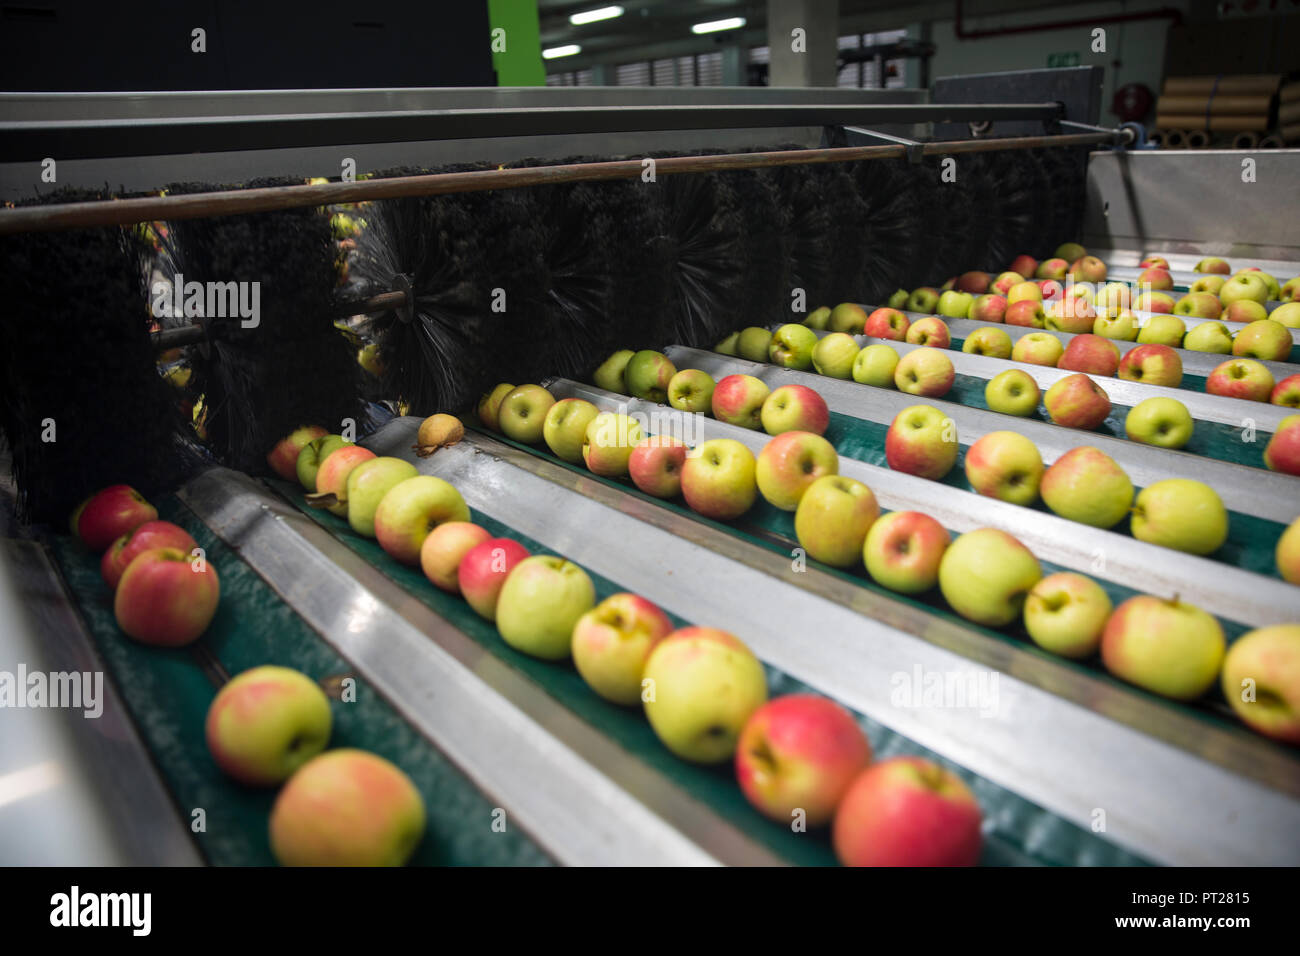 Apples being sorted - Stock Image